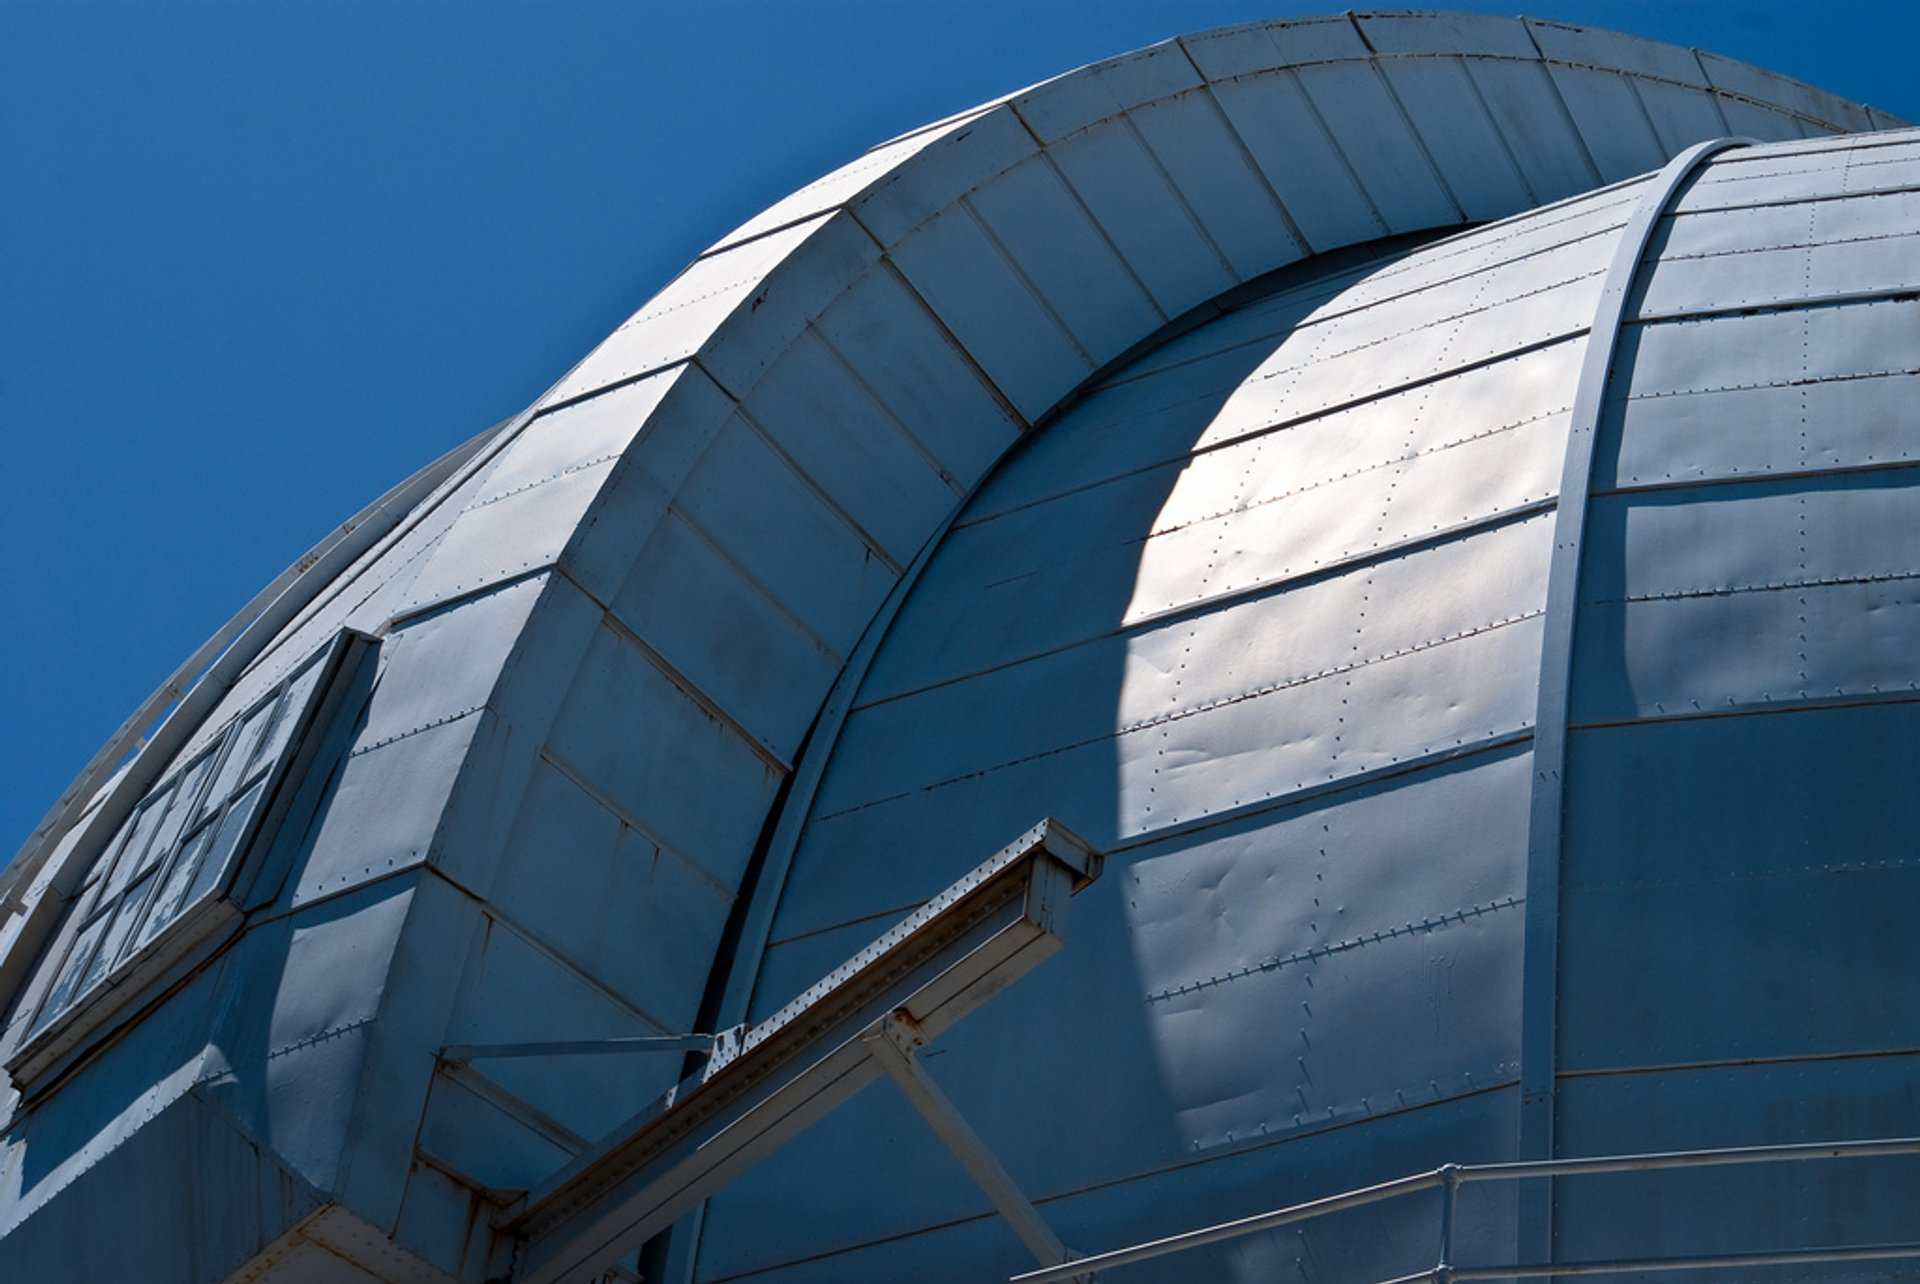 Best time for Mount Wilson Observatory in Los Angeles 2020